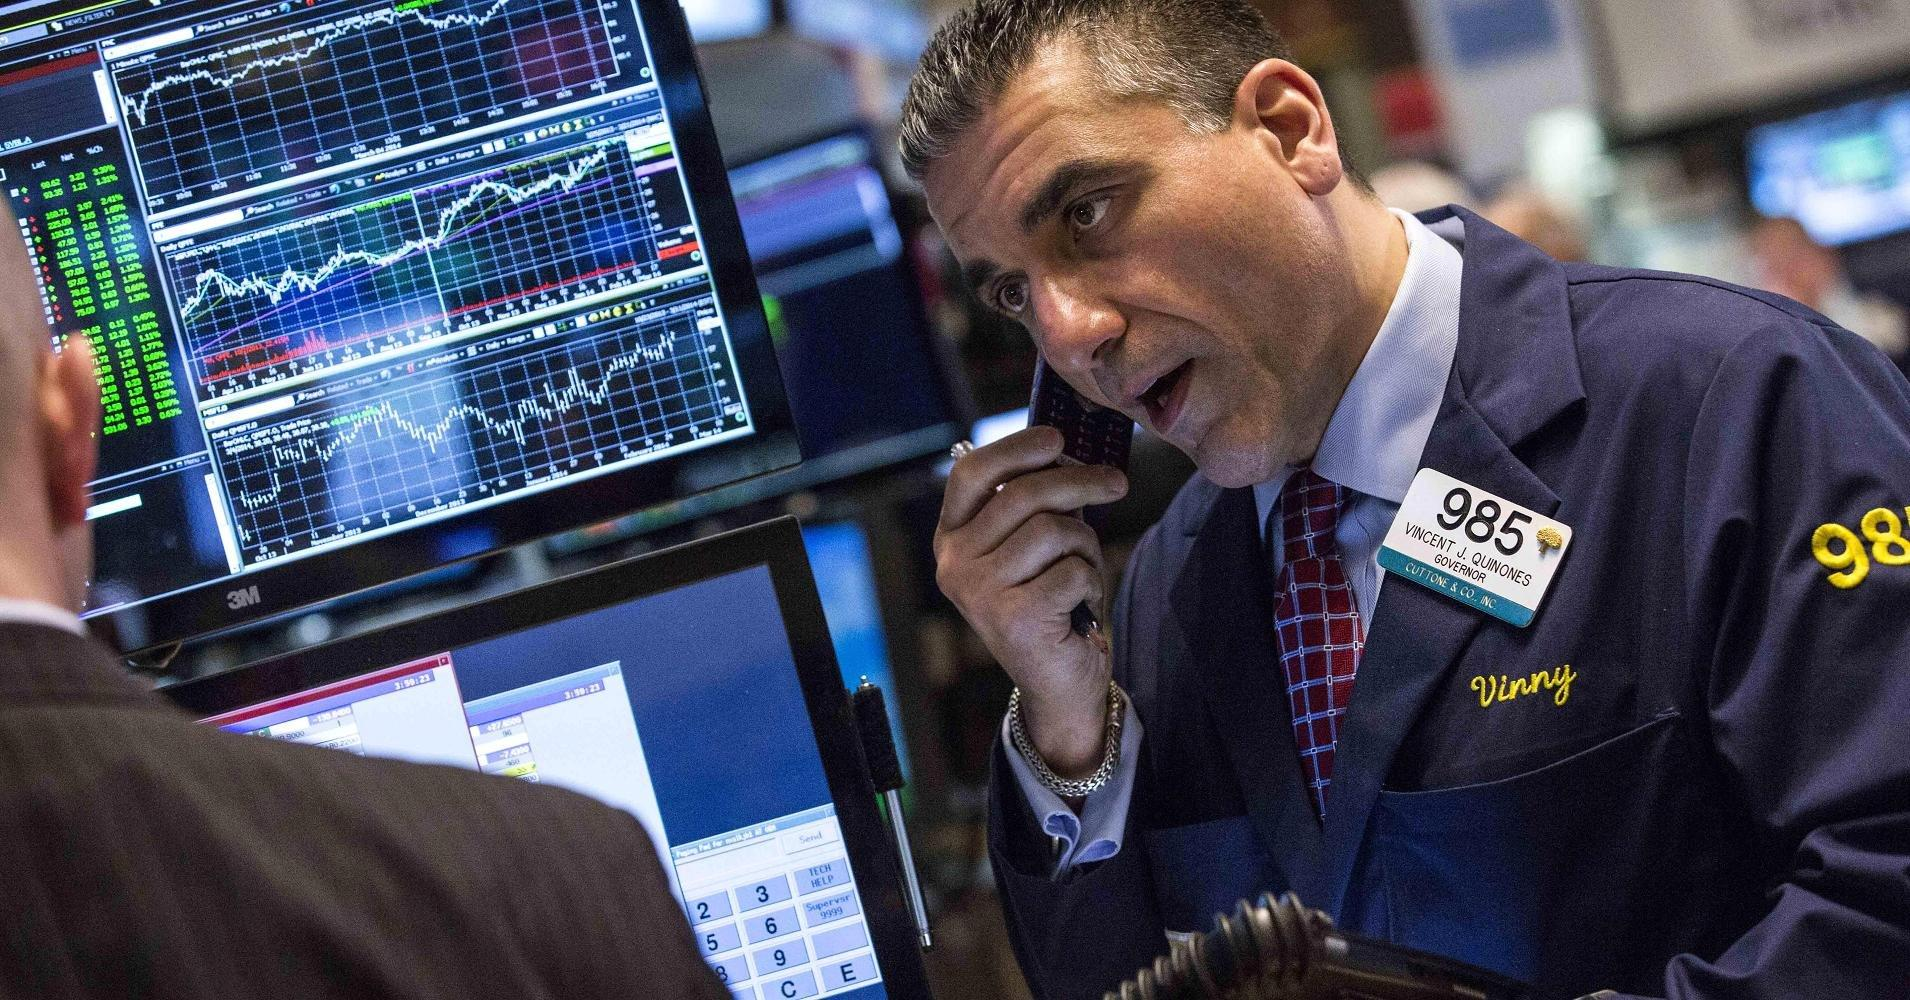 Early movers: DTV, WMT, UPS, GSK, SNE & more